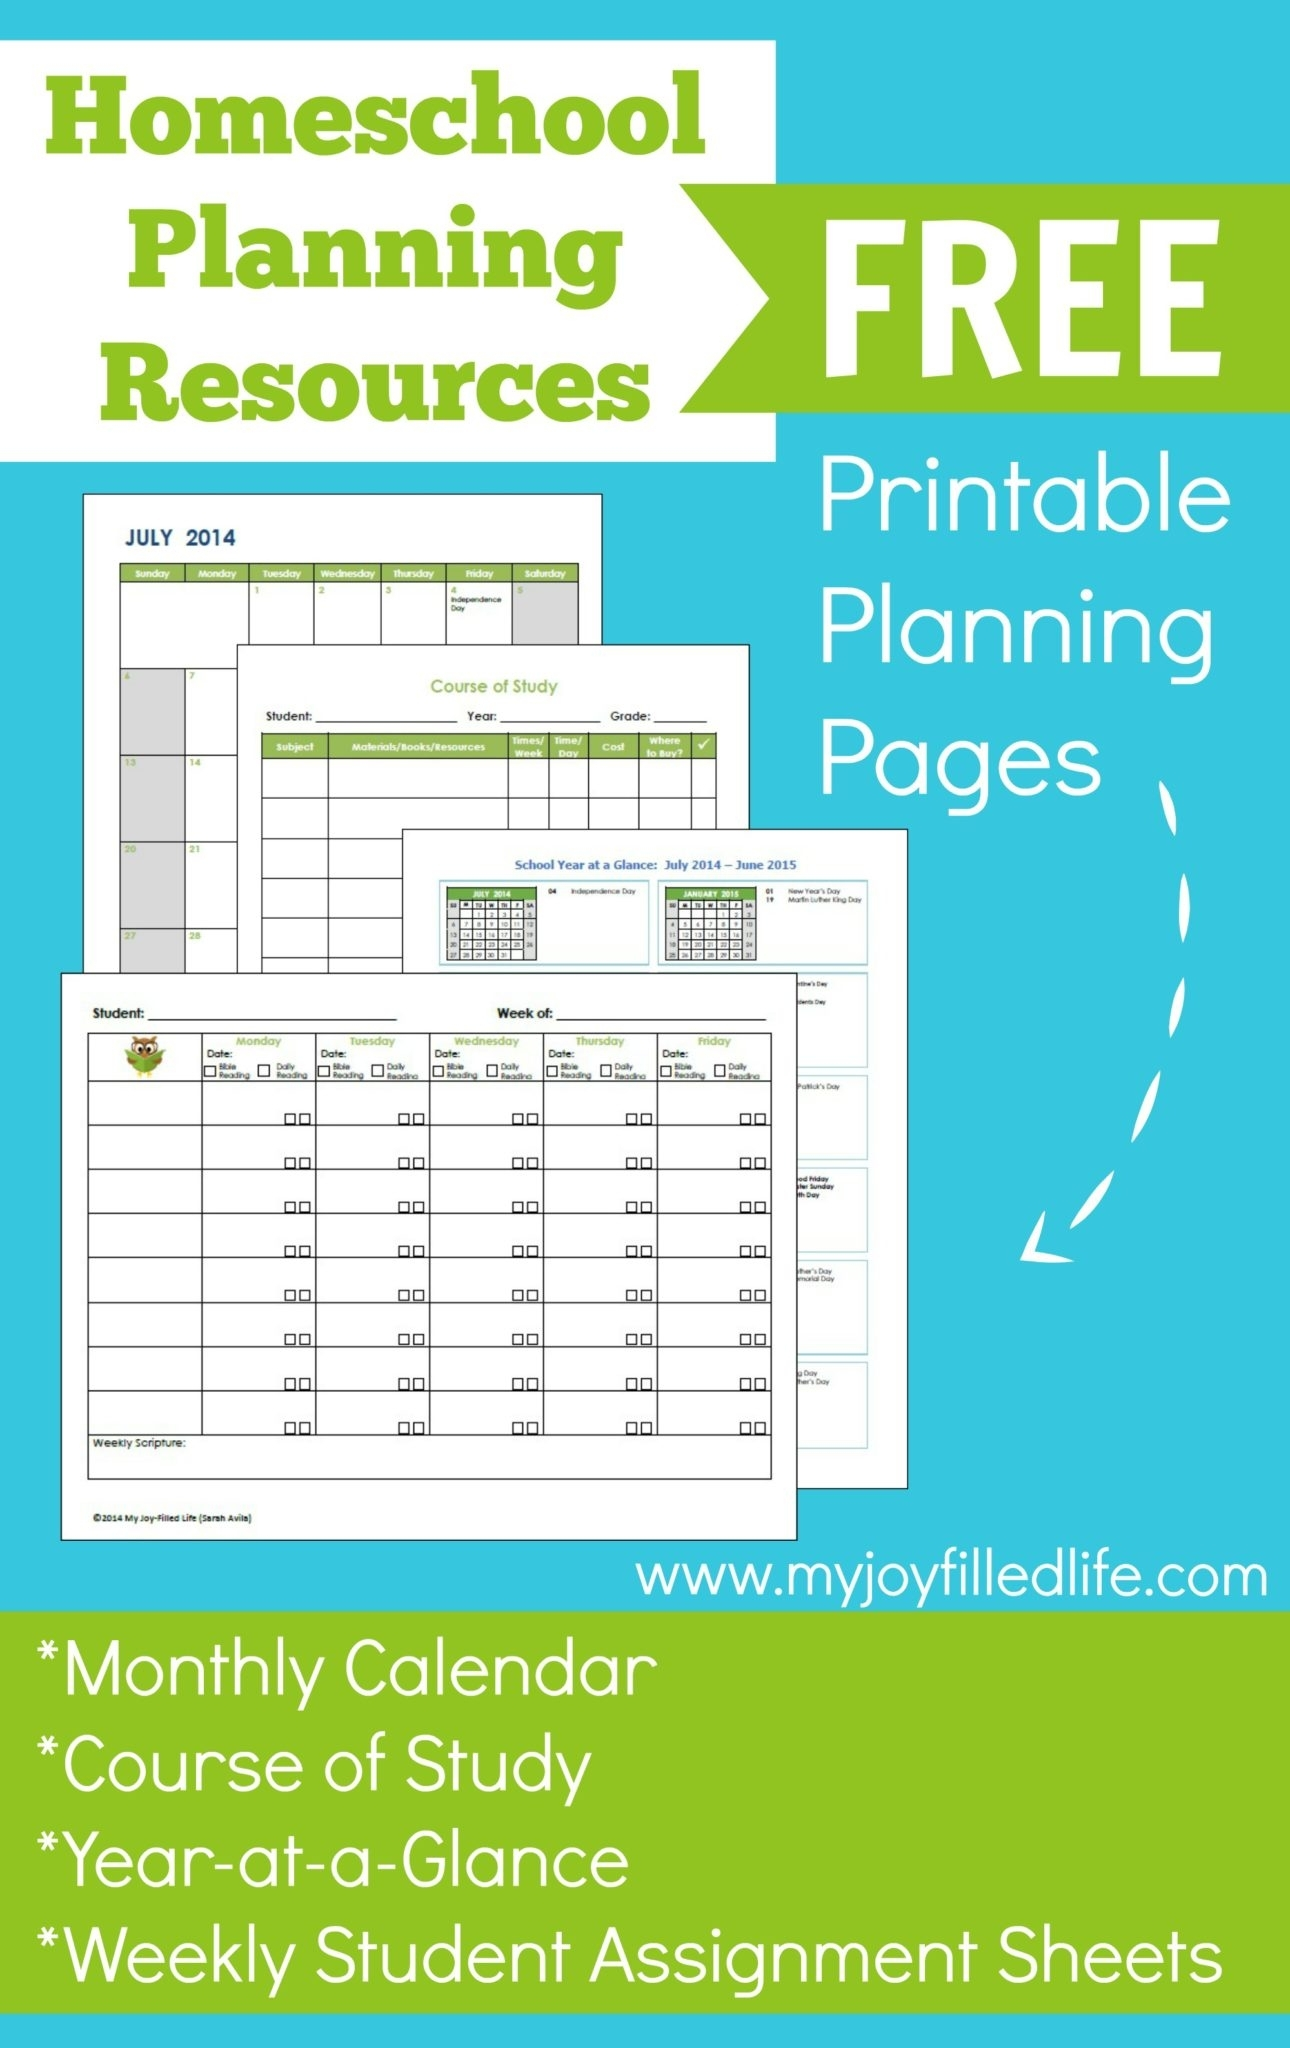 Homeschool Planning Resources & Free Printables - My Joy-Filled Life for Catholic Daily Planner Template Printable Free